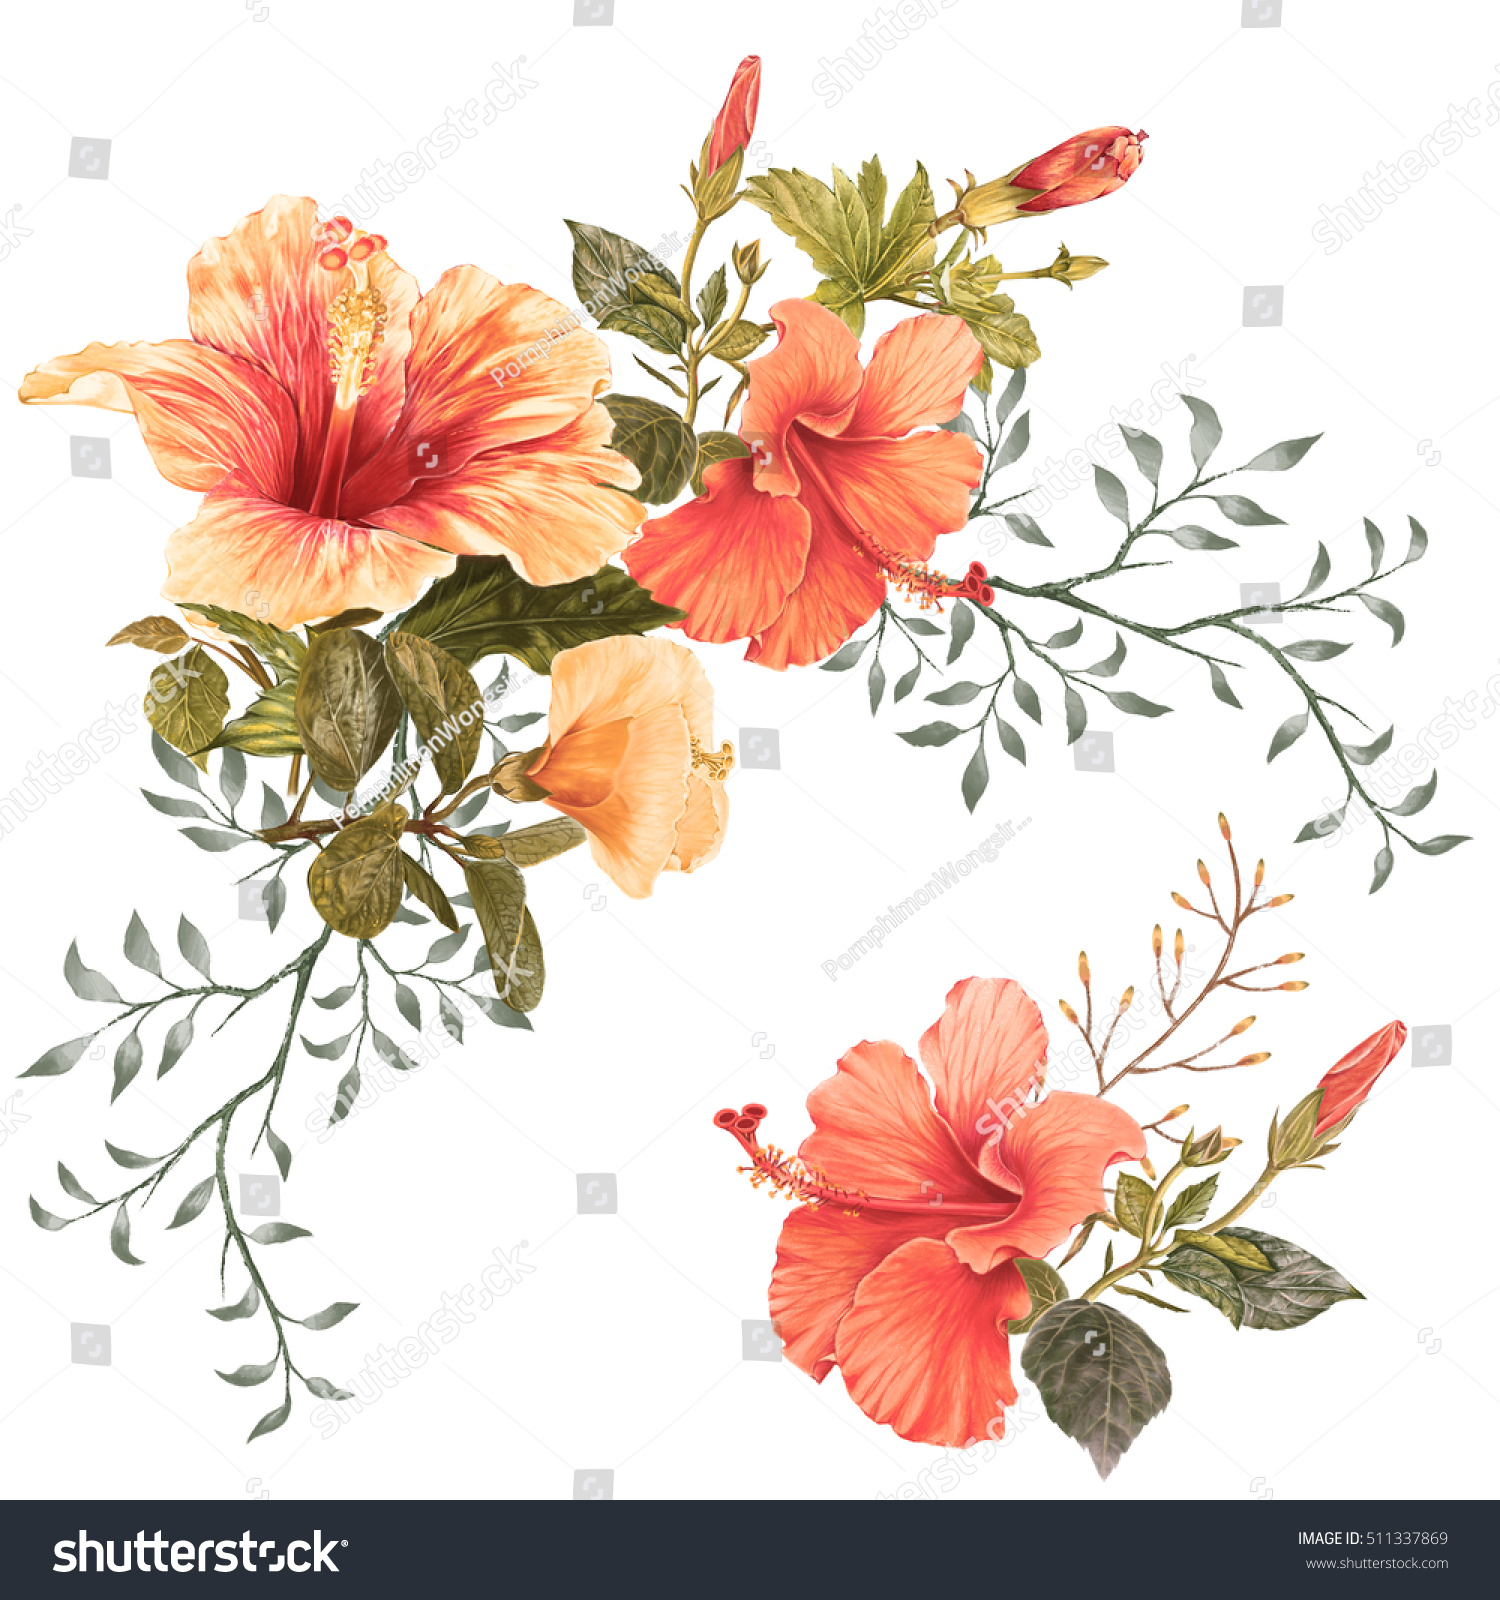 Illustration beautiful flower on white background illustration of beautiful flower on white background voltagebd Image collections